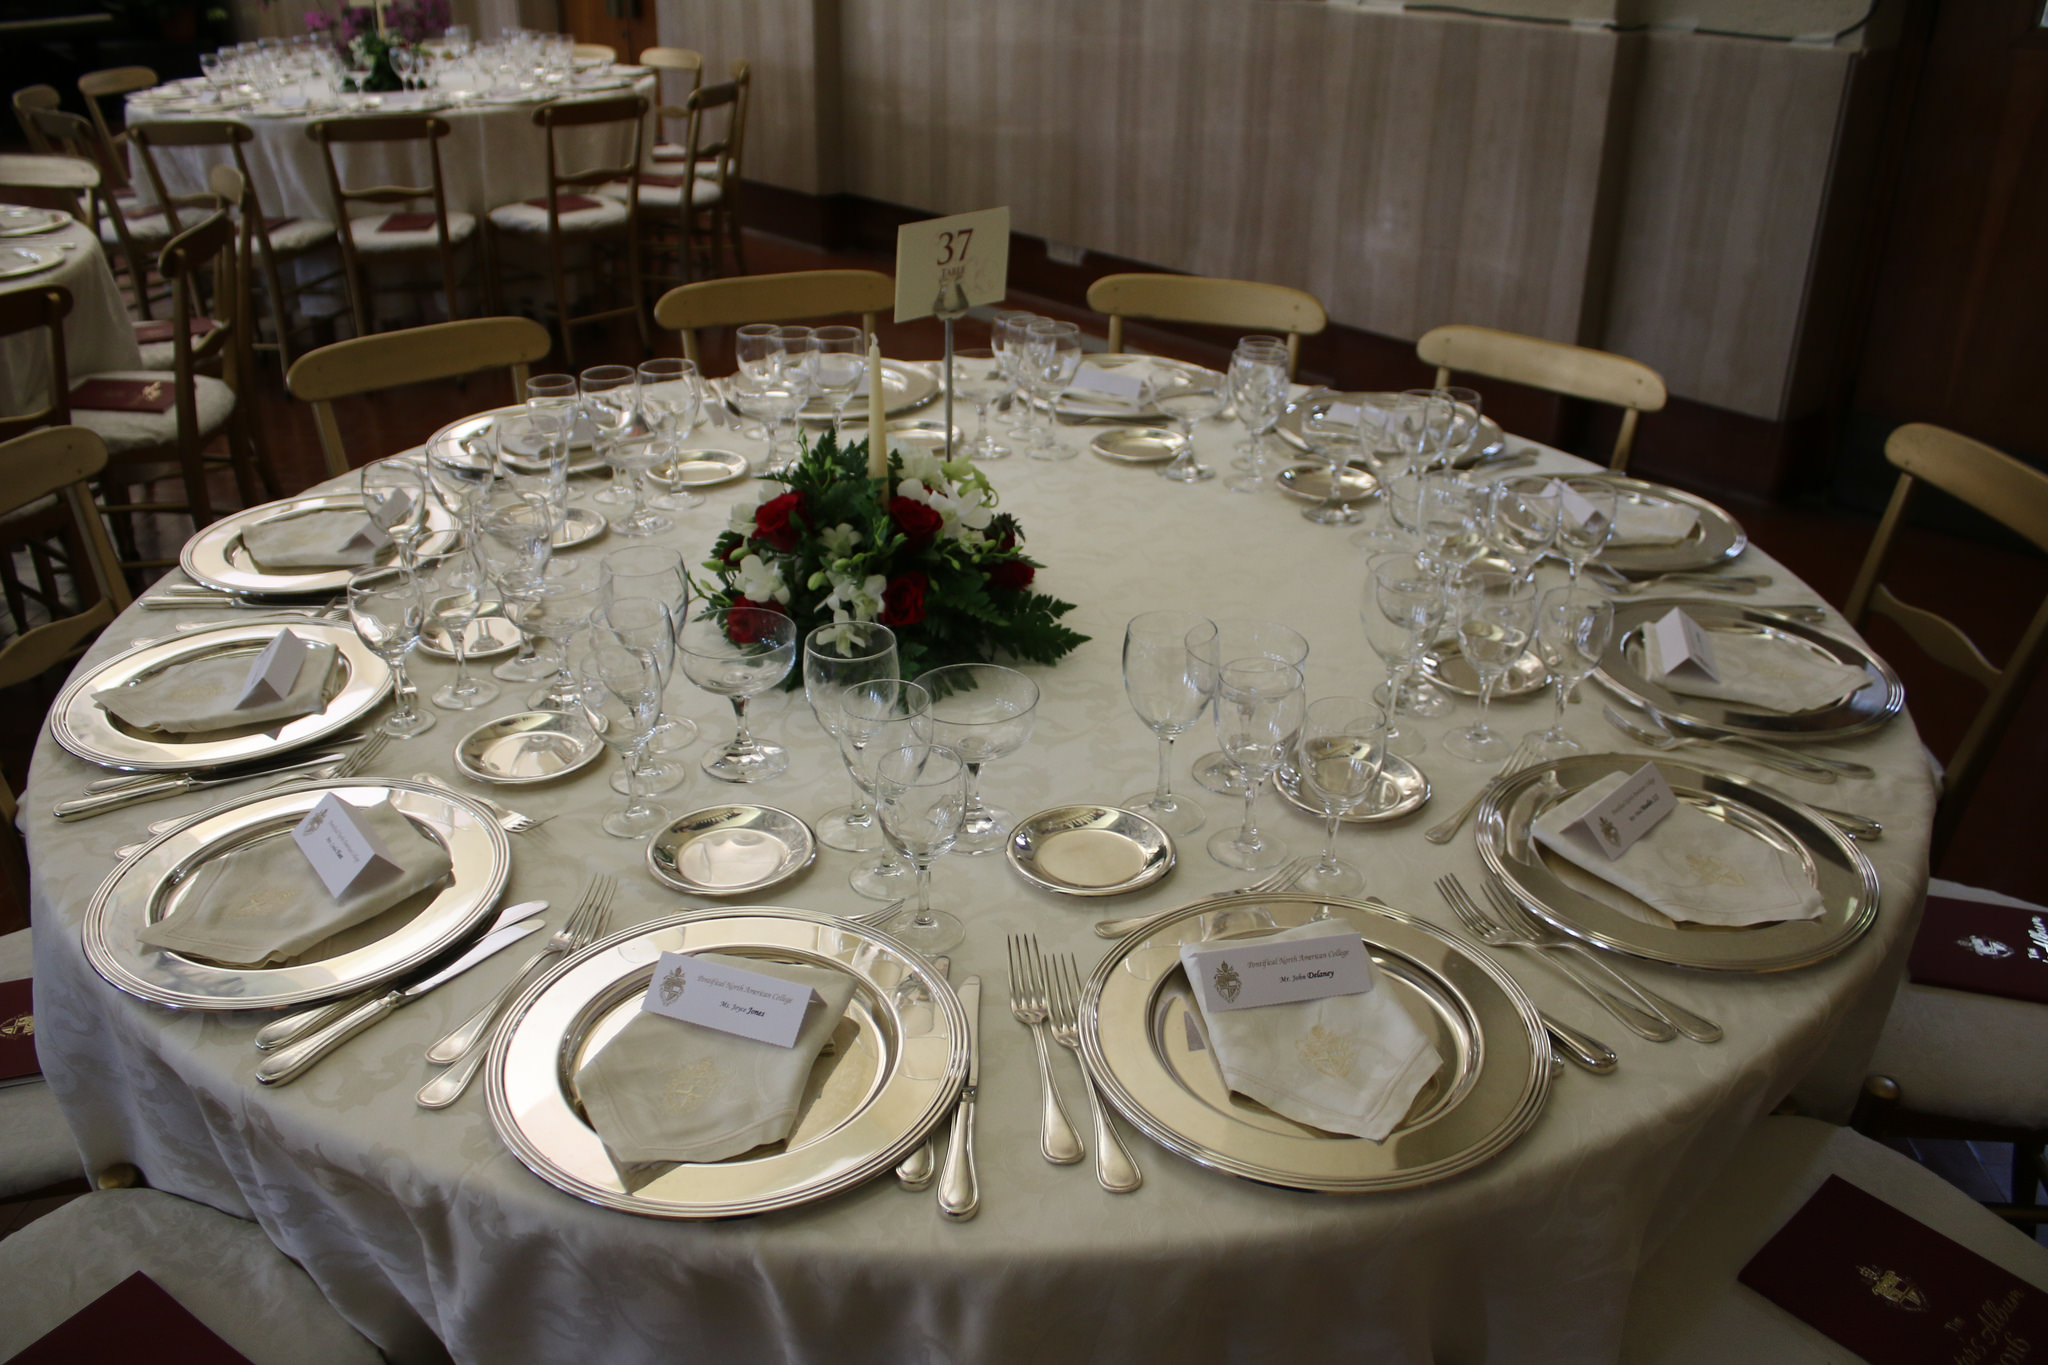 A typical place setting, ready to serve the hundreds of guests, supporters, friends, and benefactors of the College for the special night.